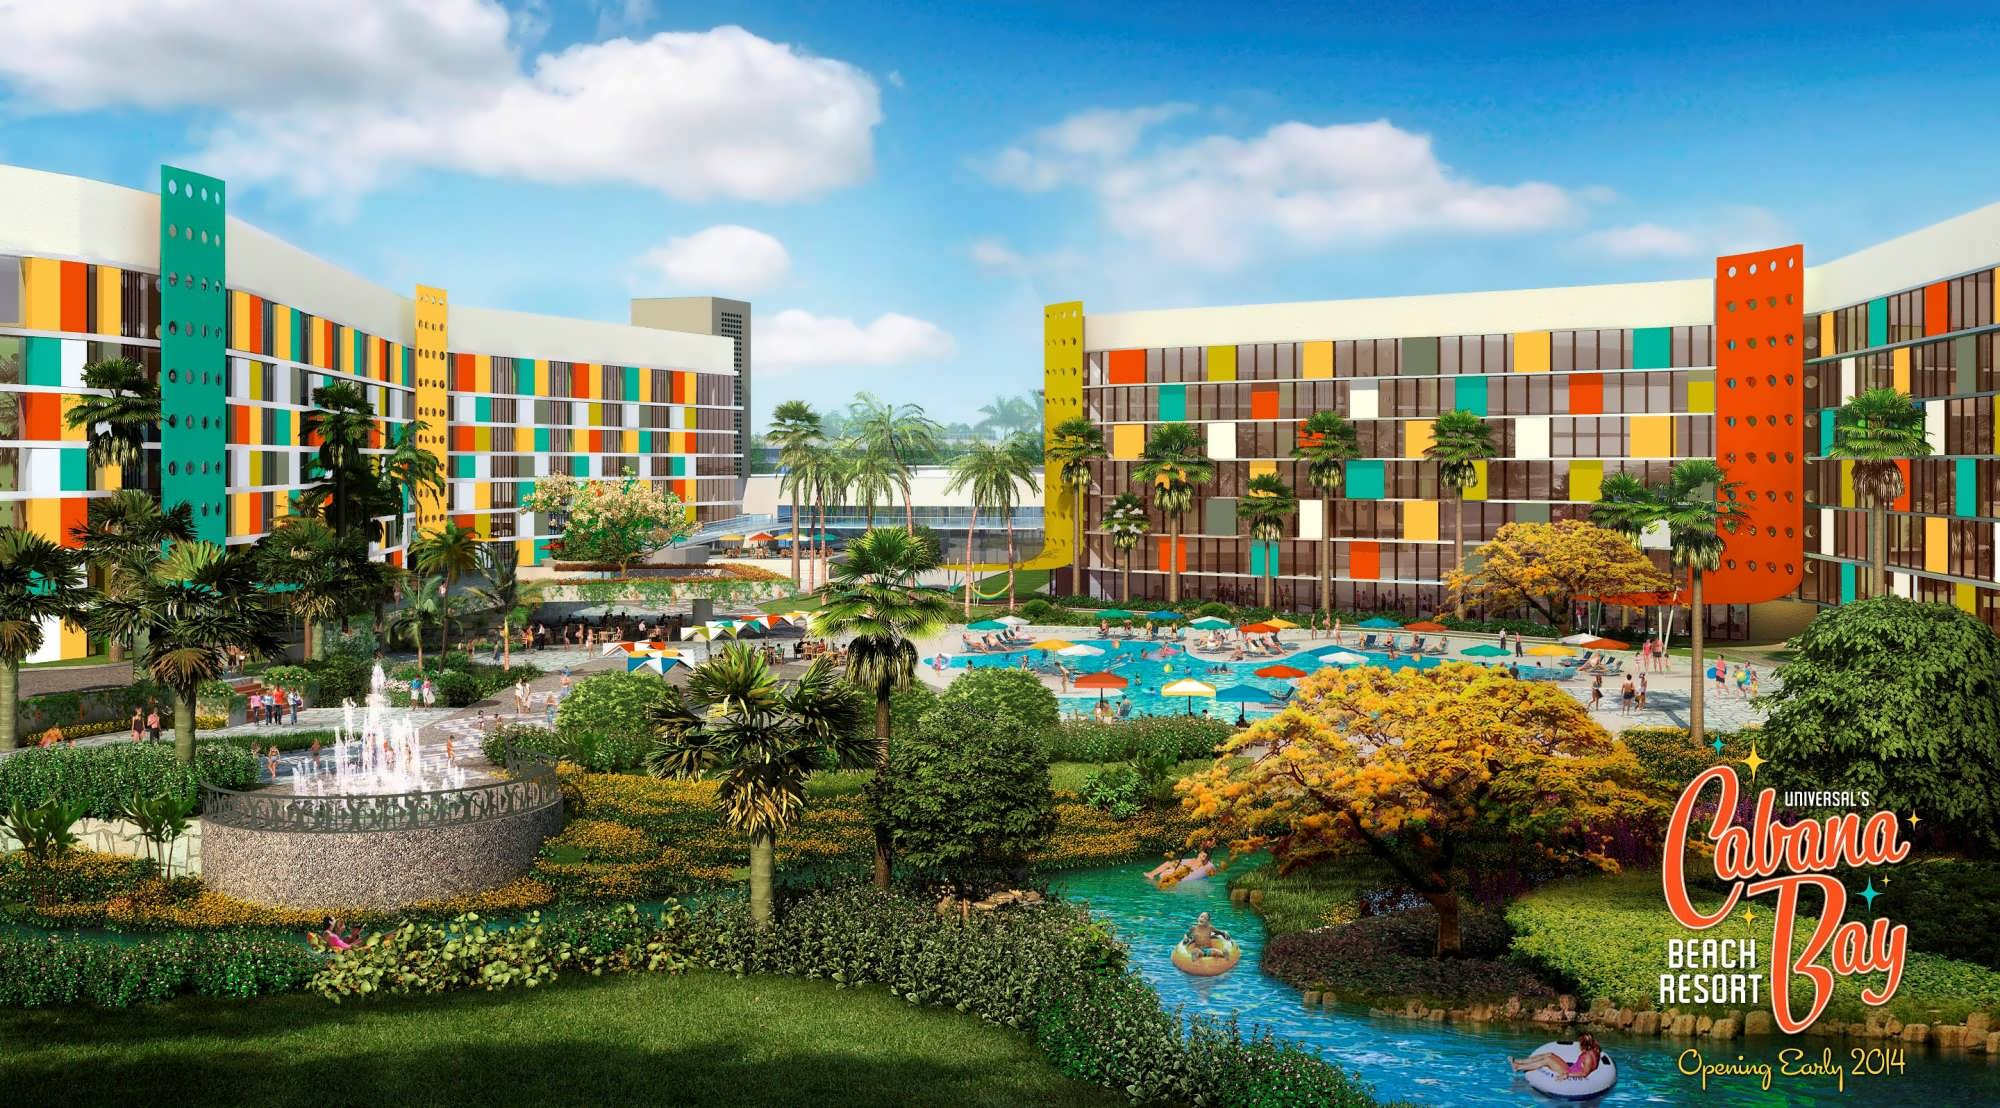 Cabana Bay Beach Resort at Universal Orlando First look